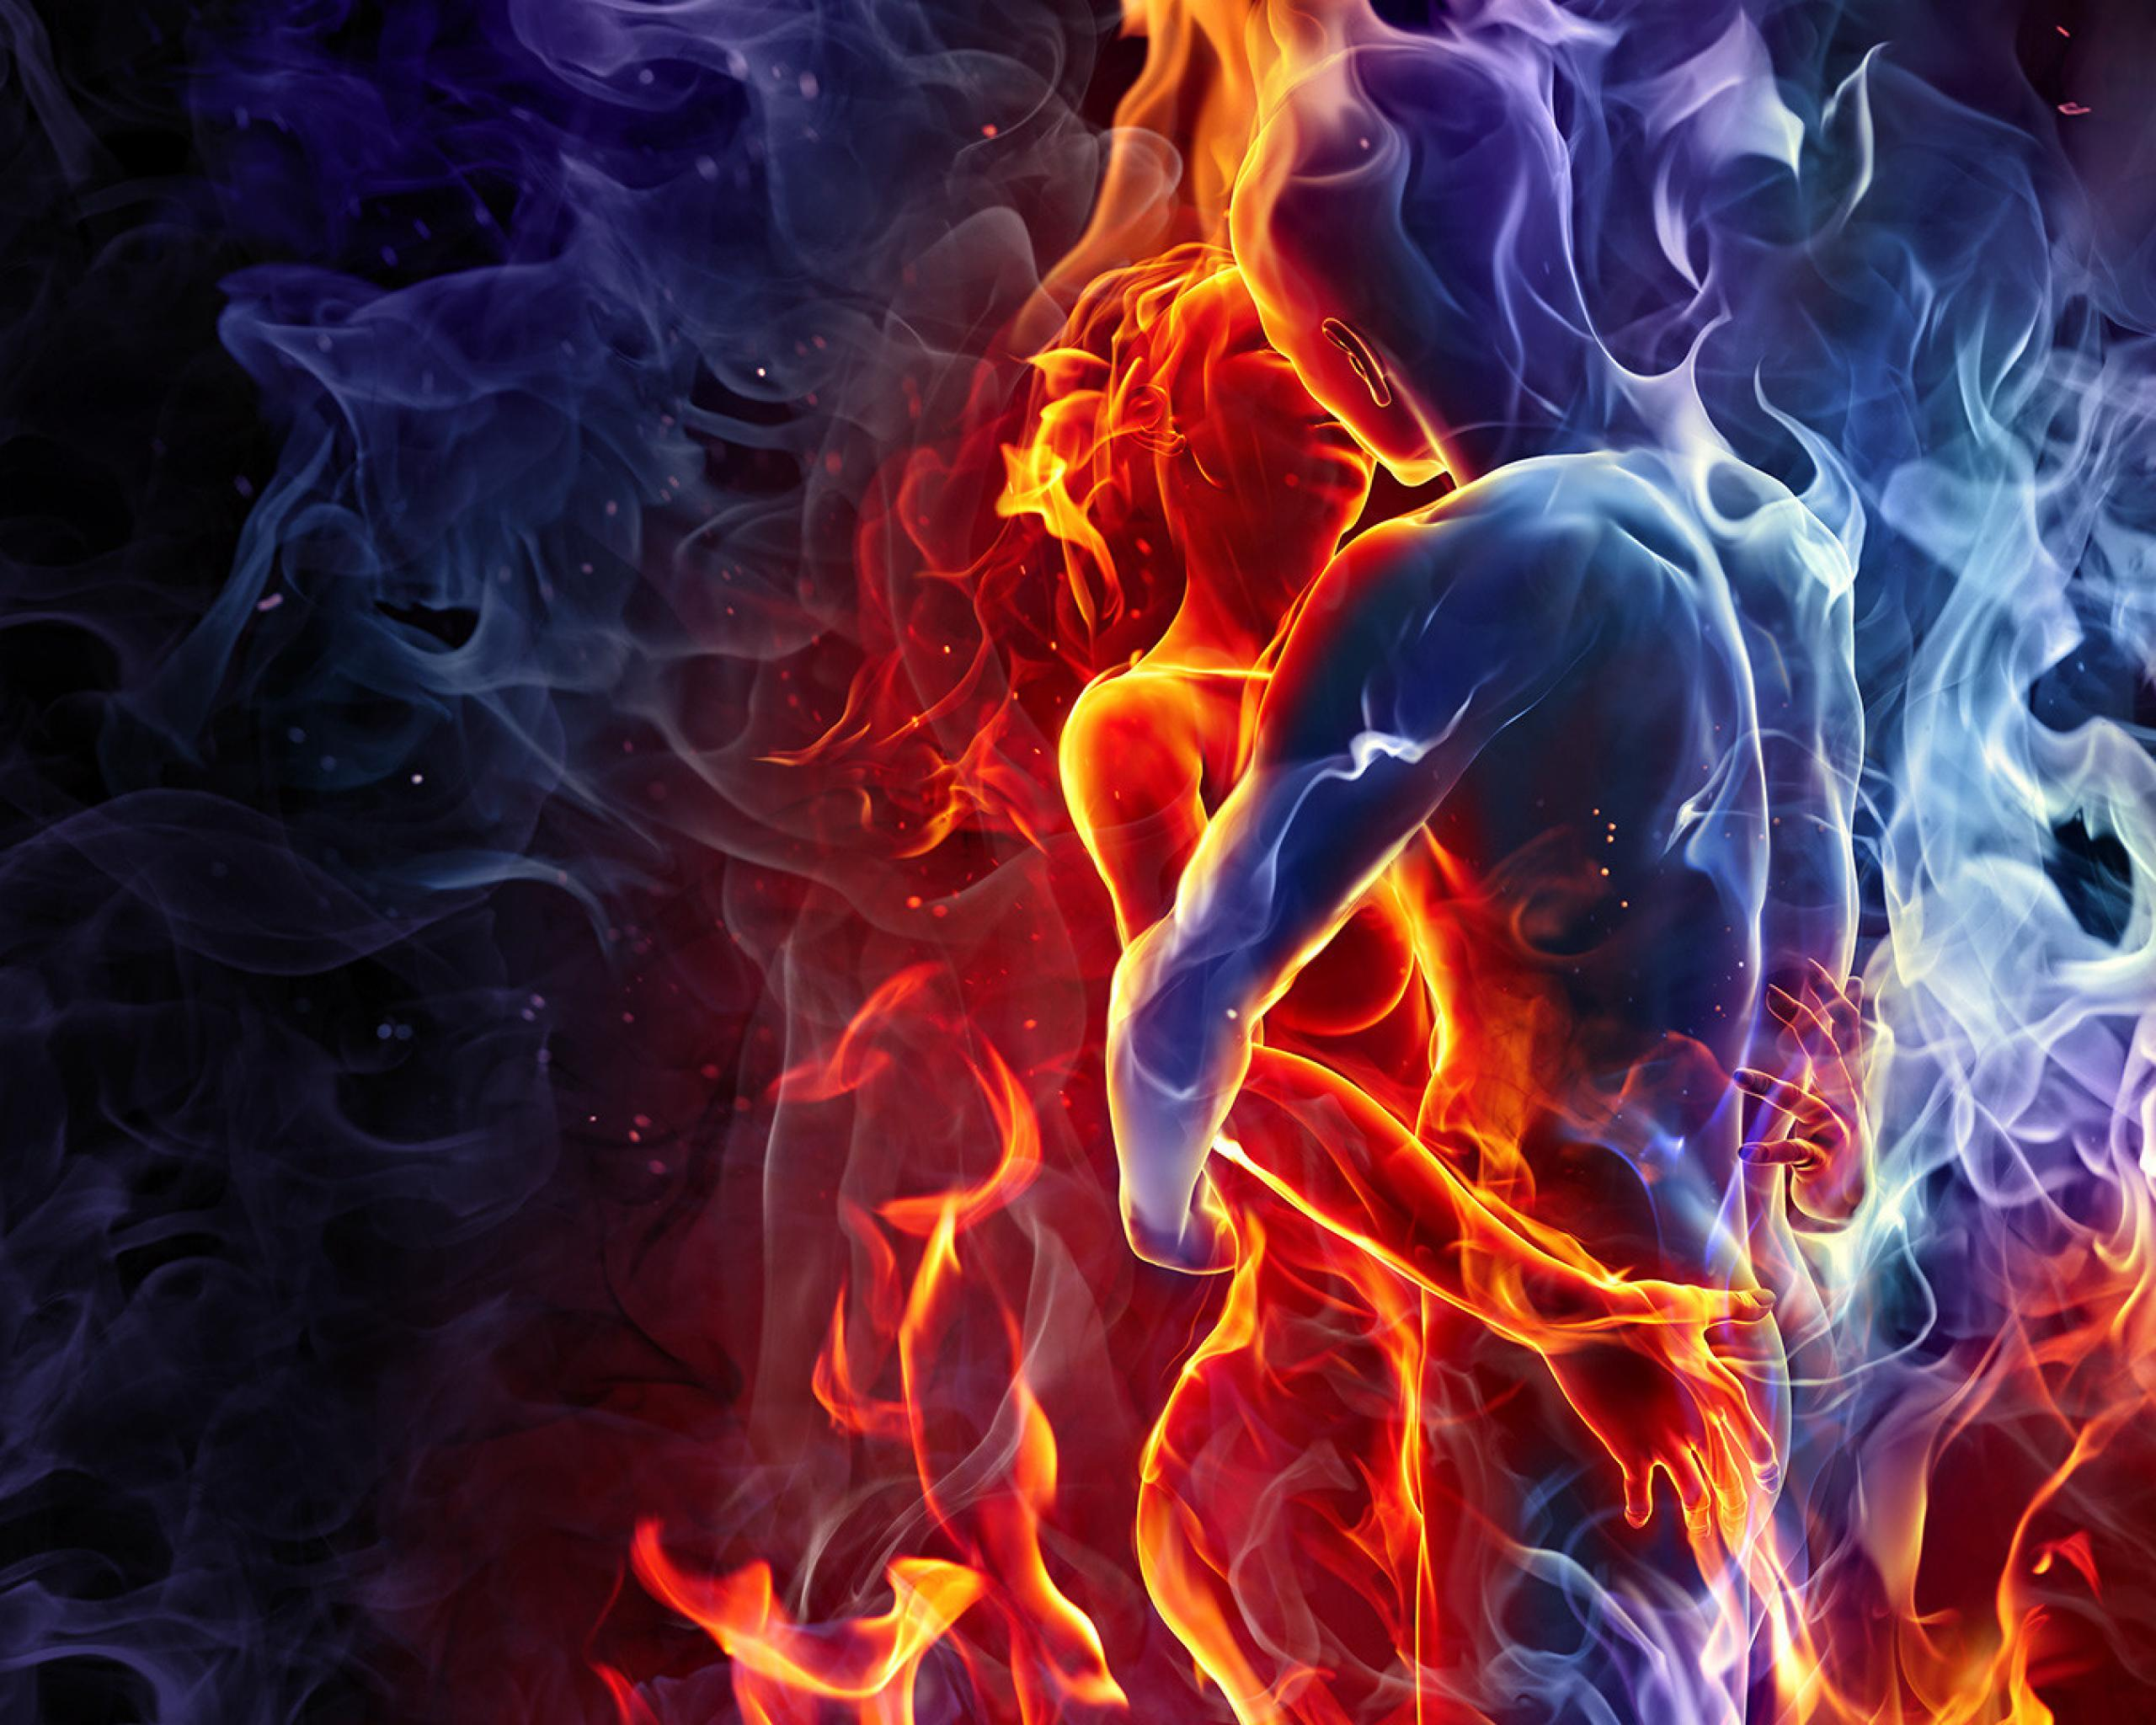 kiss-love-man-woman-silhouette-fire-smoke-opposites-combine-439414